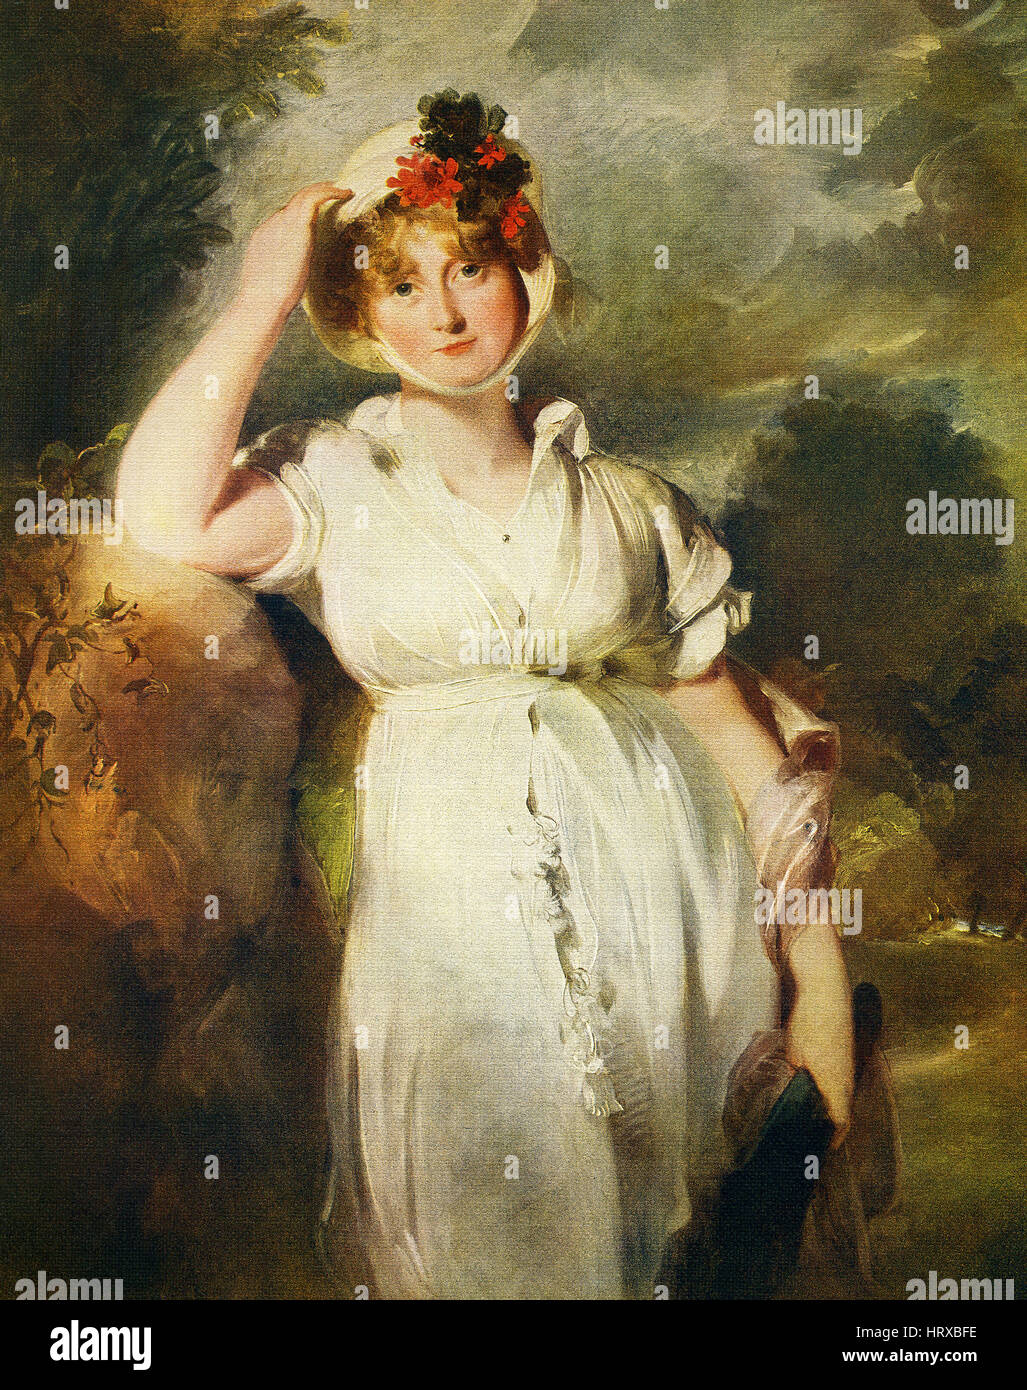 This painting, titled 'Caroline of Brunswick, Queen of George IV,' is by the English artist Sir Thomas Lawrence - Stock Image